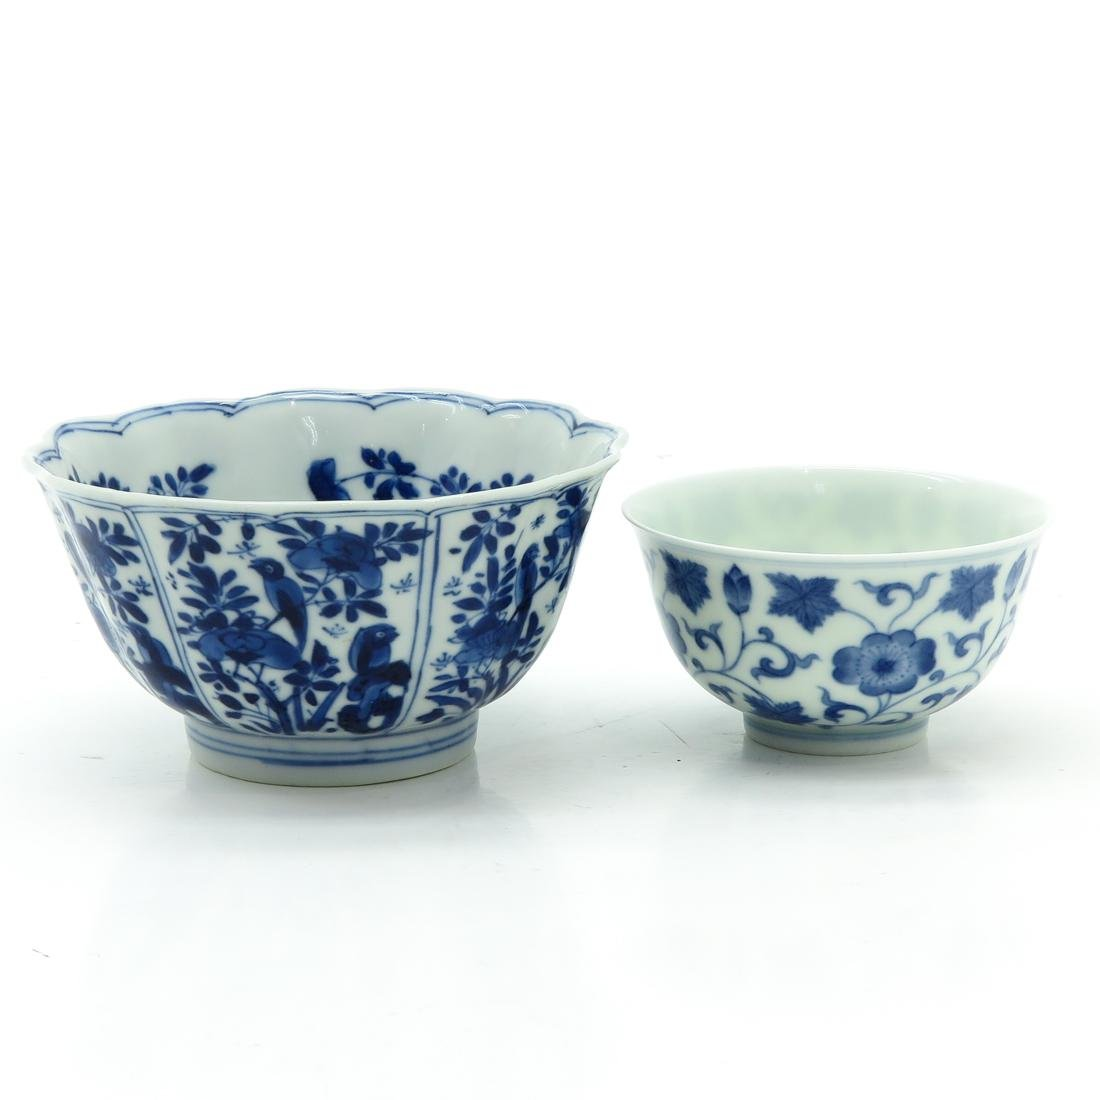 Lot of 2 Cups - 4